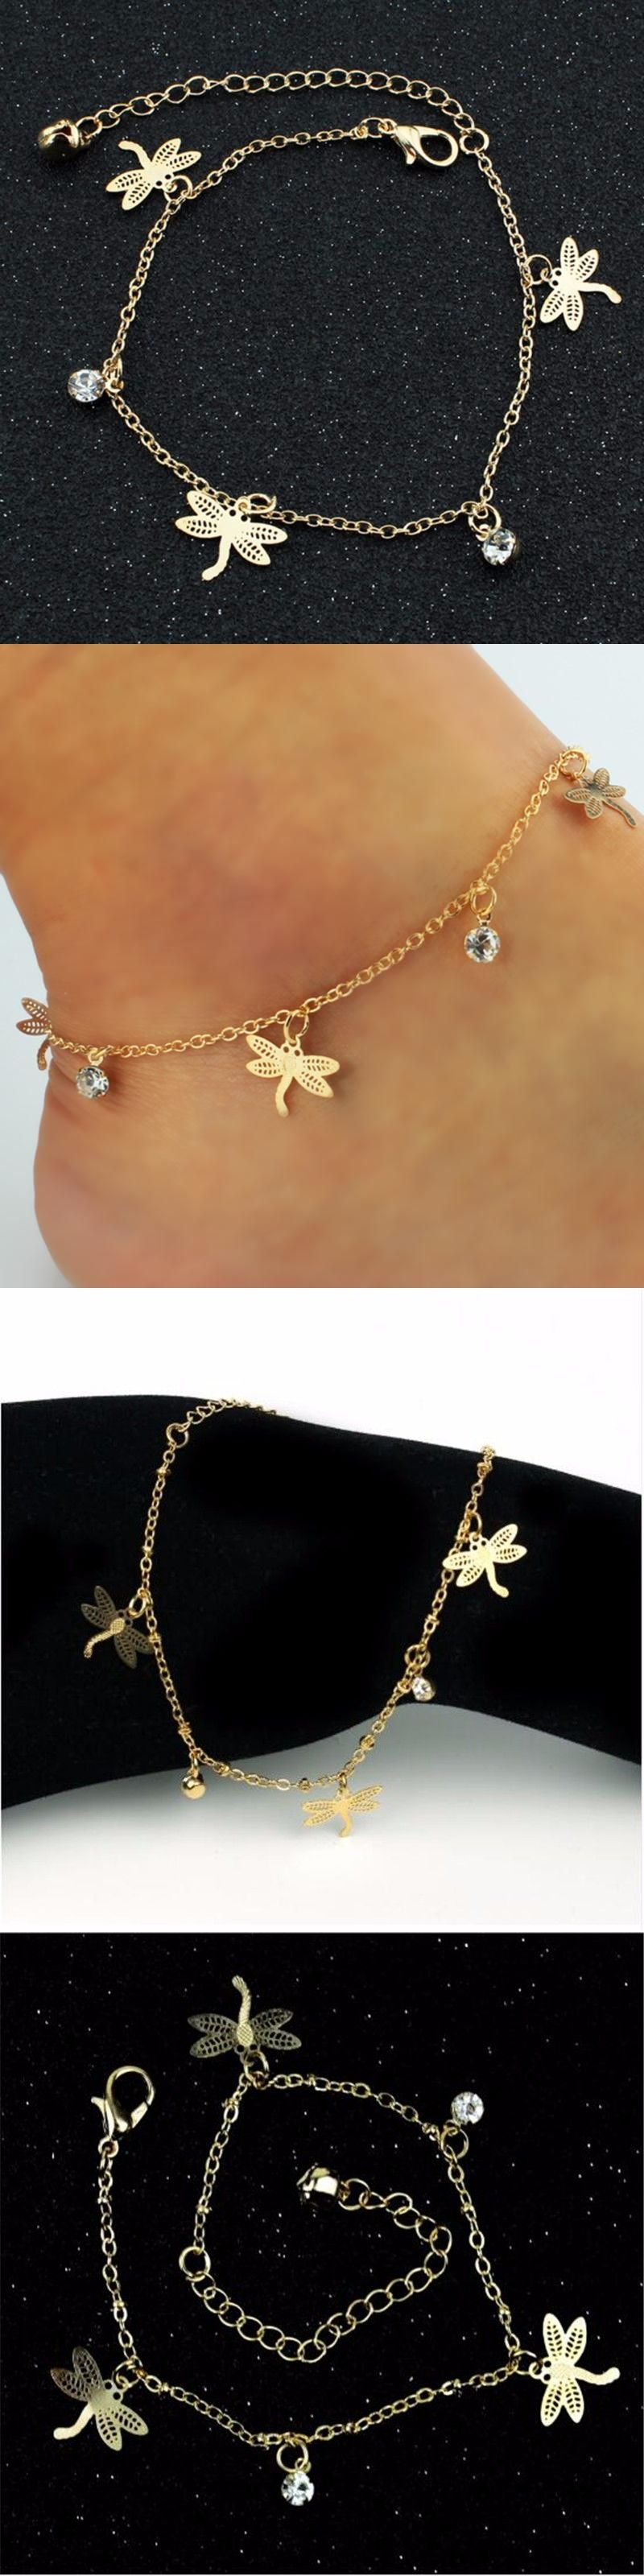 goldplated traditional ethnic anklet pin jewelry bracelets bracelet ankle designer indian